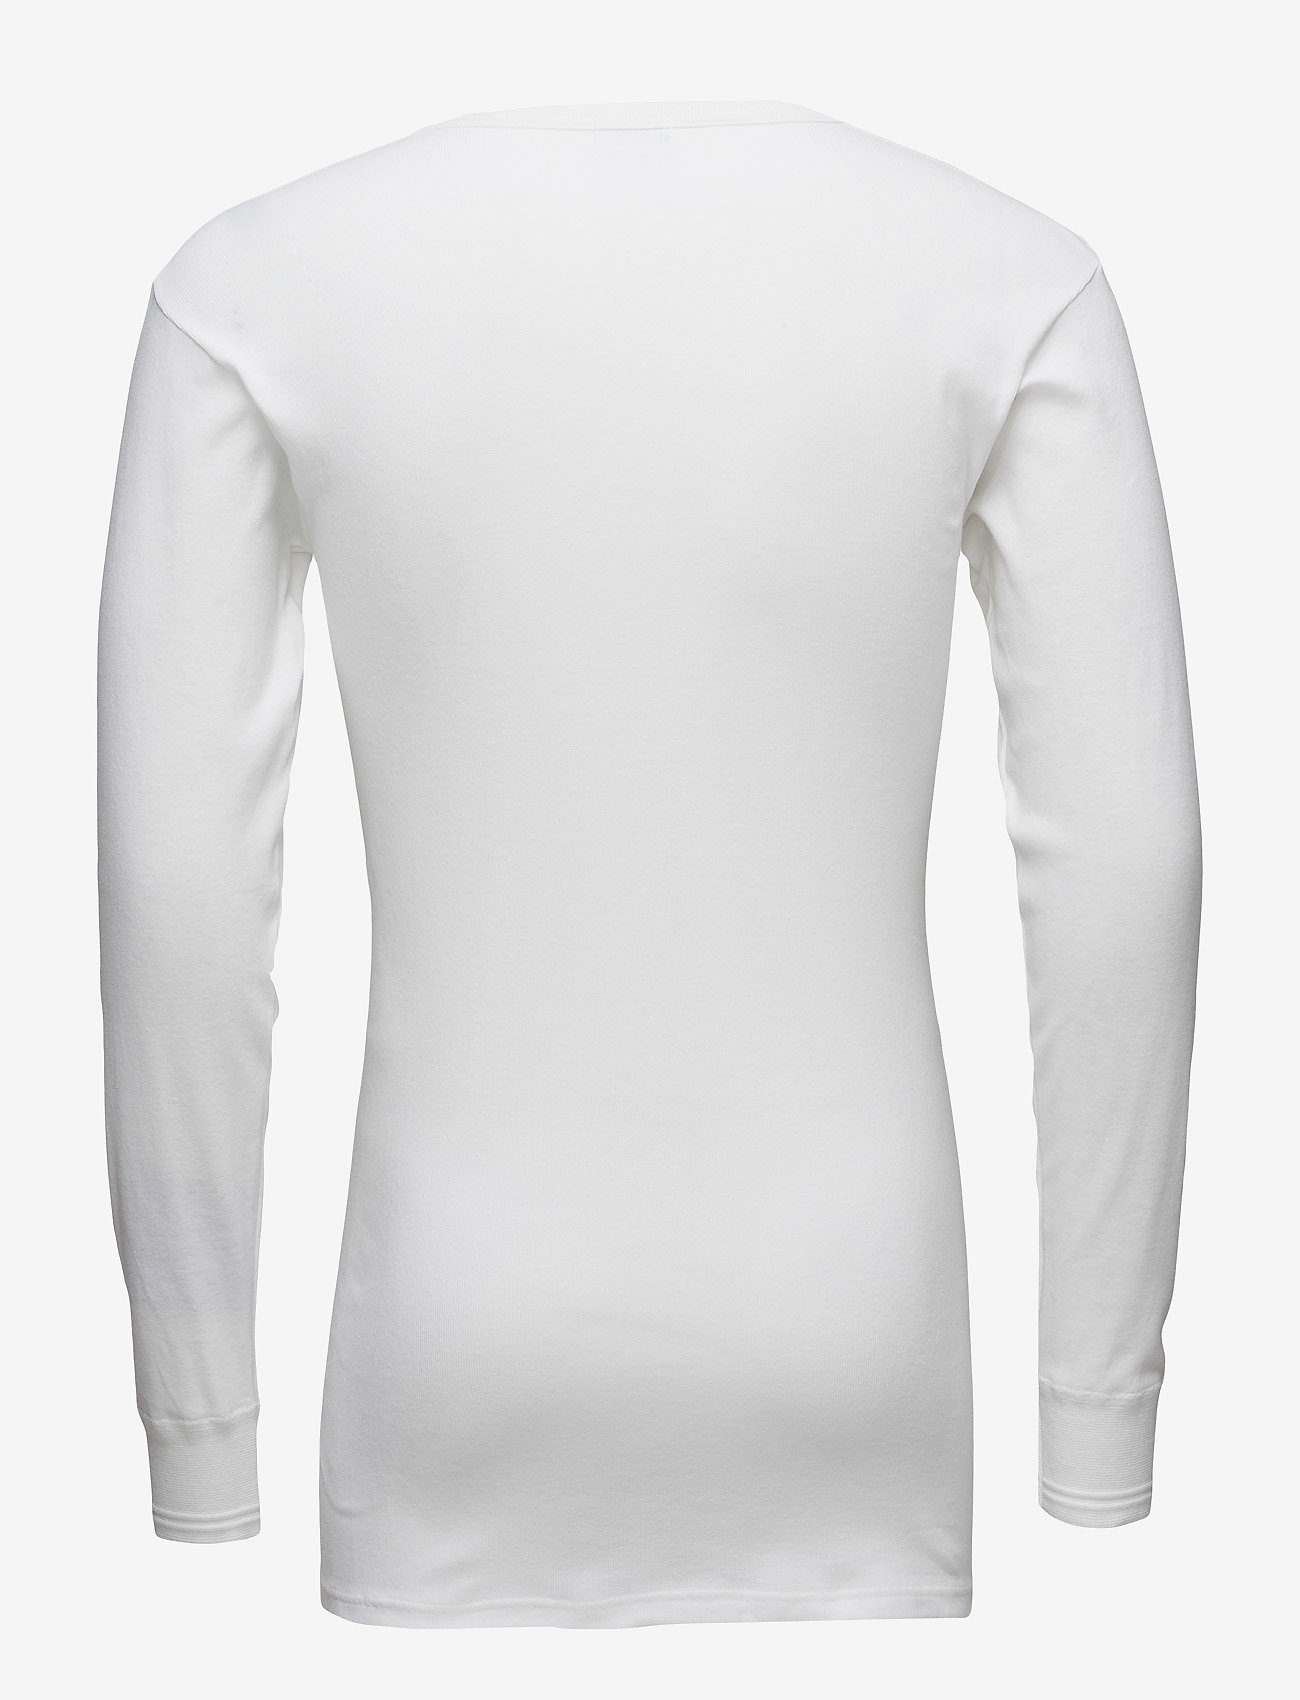 JBS - Original longsleeve - basic t-shirts - white - 1